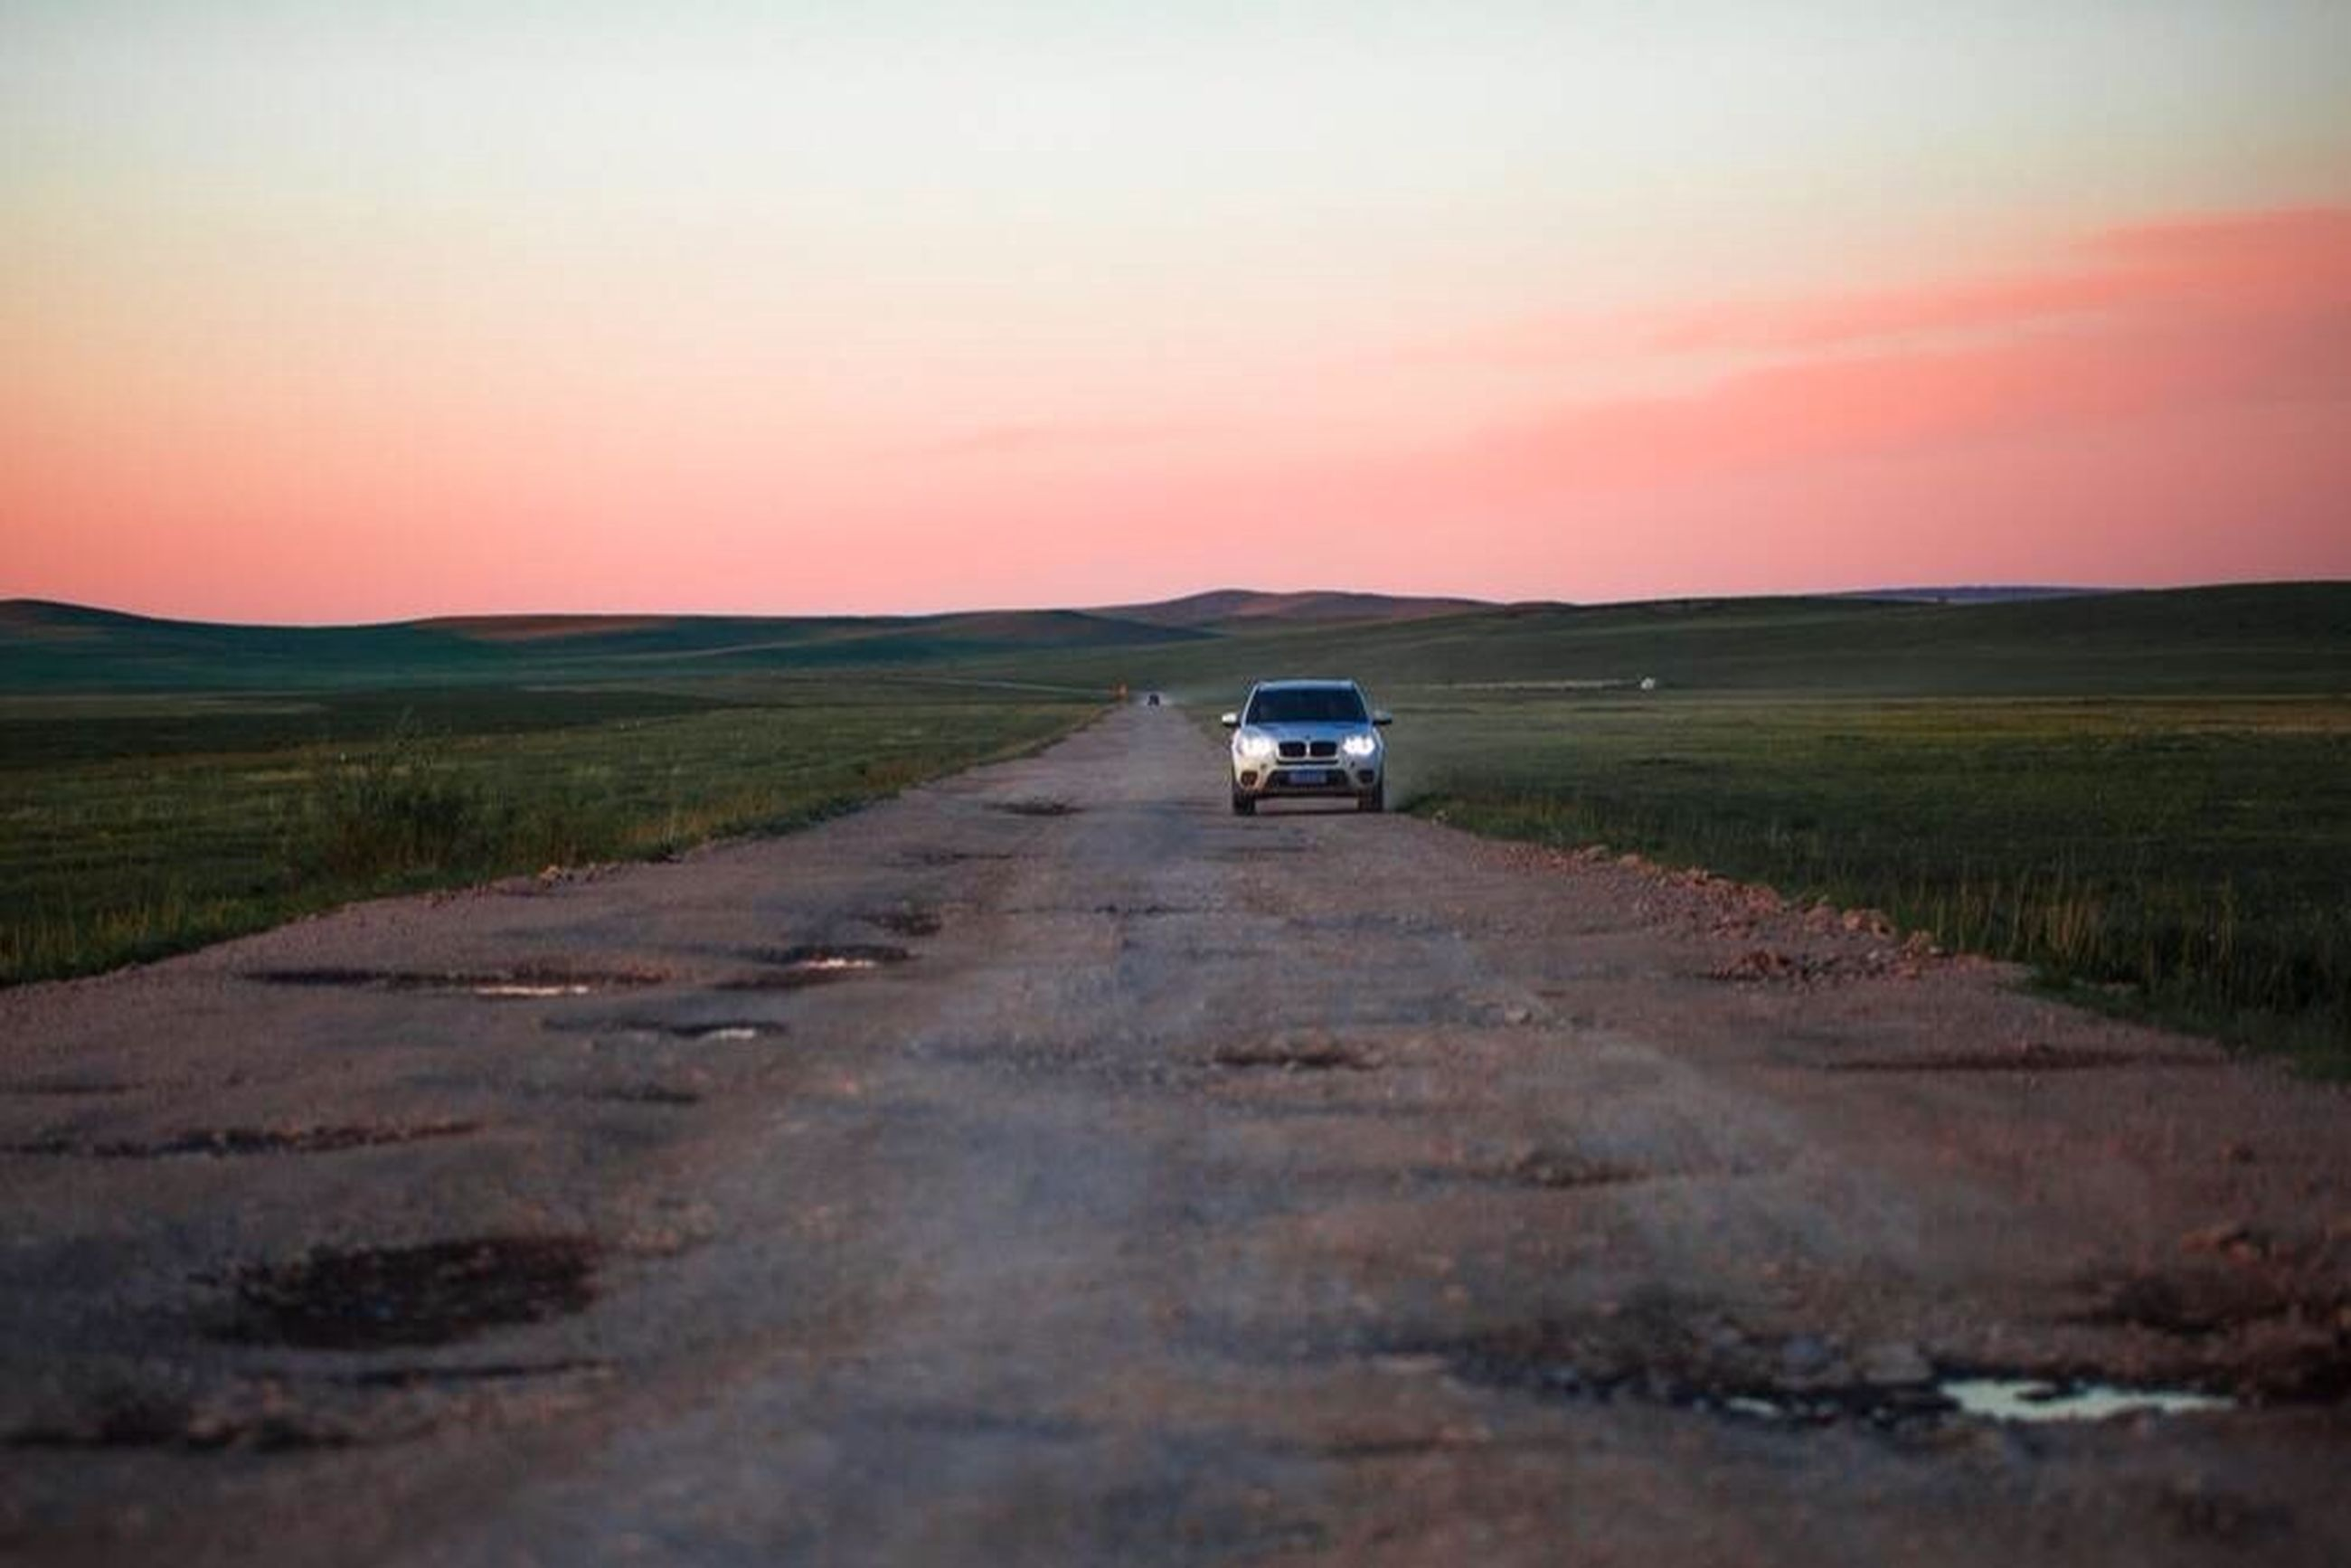 transportation, landscape, sunset, land vehicle, the way forward, mode of transport, field, sky, dirt road, rural scene, road, country road, tranquil scene, diminishing perspective, agriculture, nature, on the move, tranquility